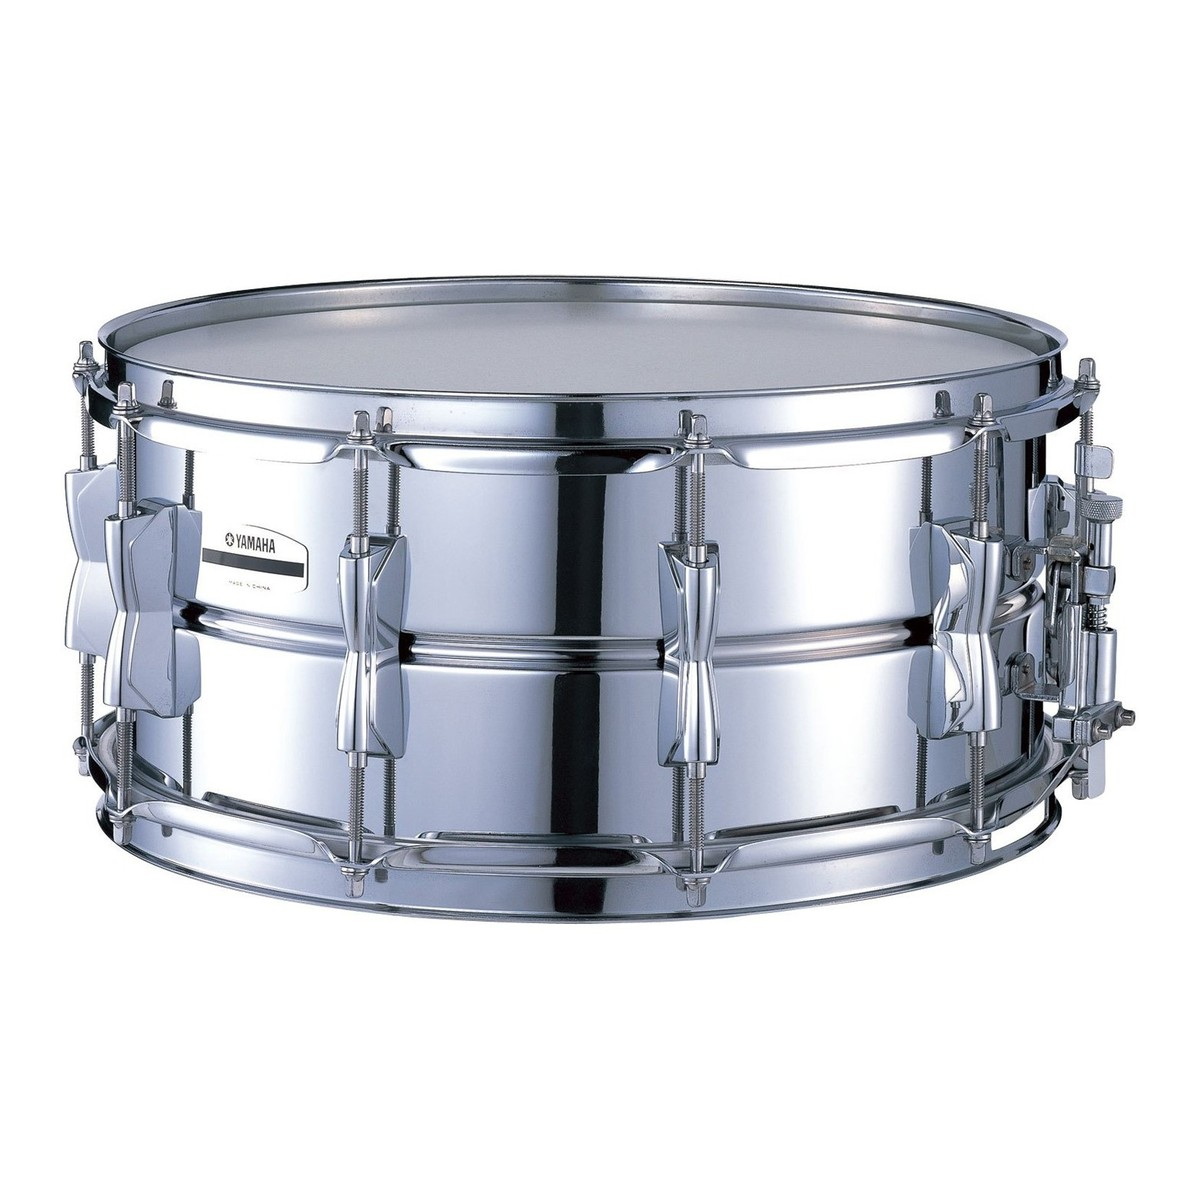 Yamaha SD266A Stage Custom Snare 14 x 6.5